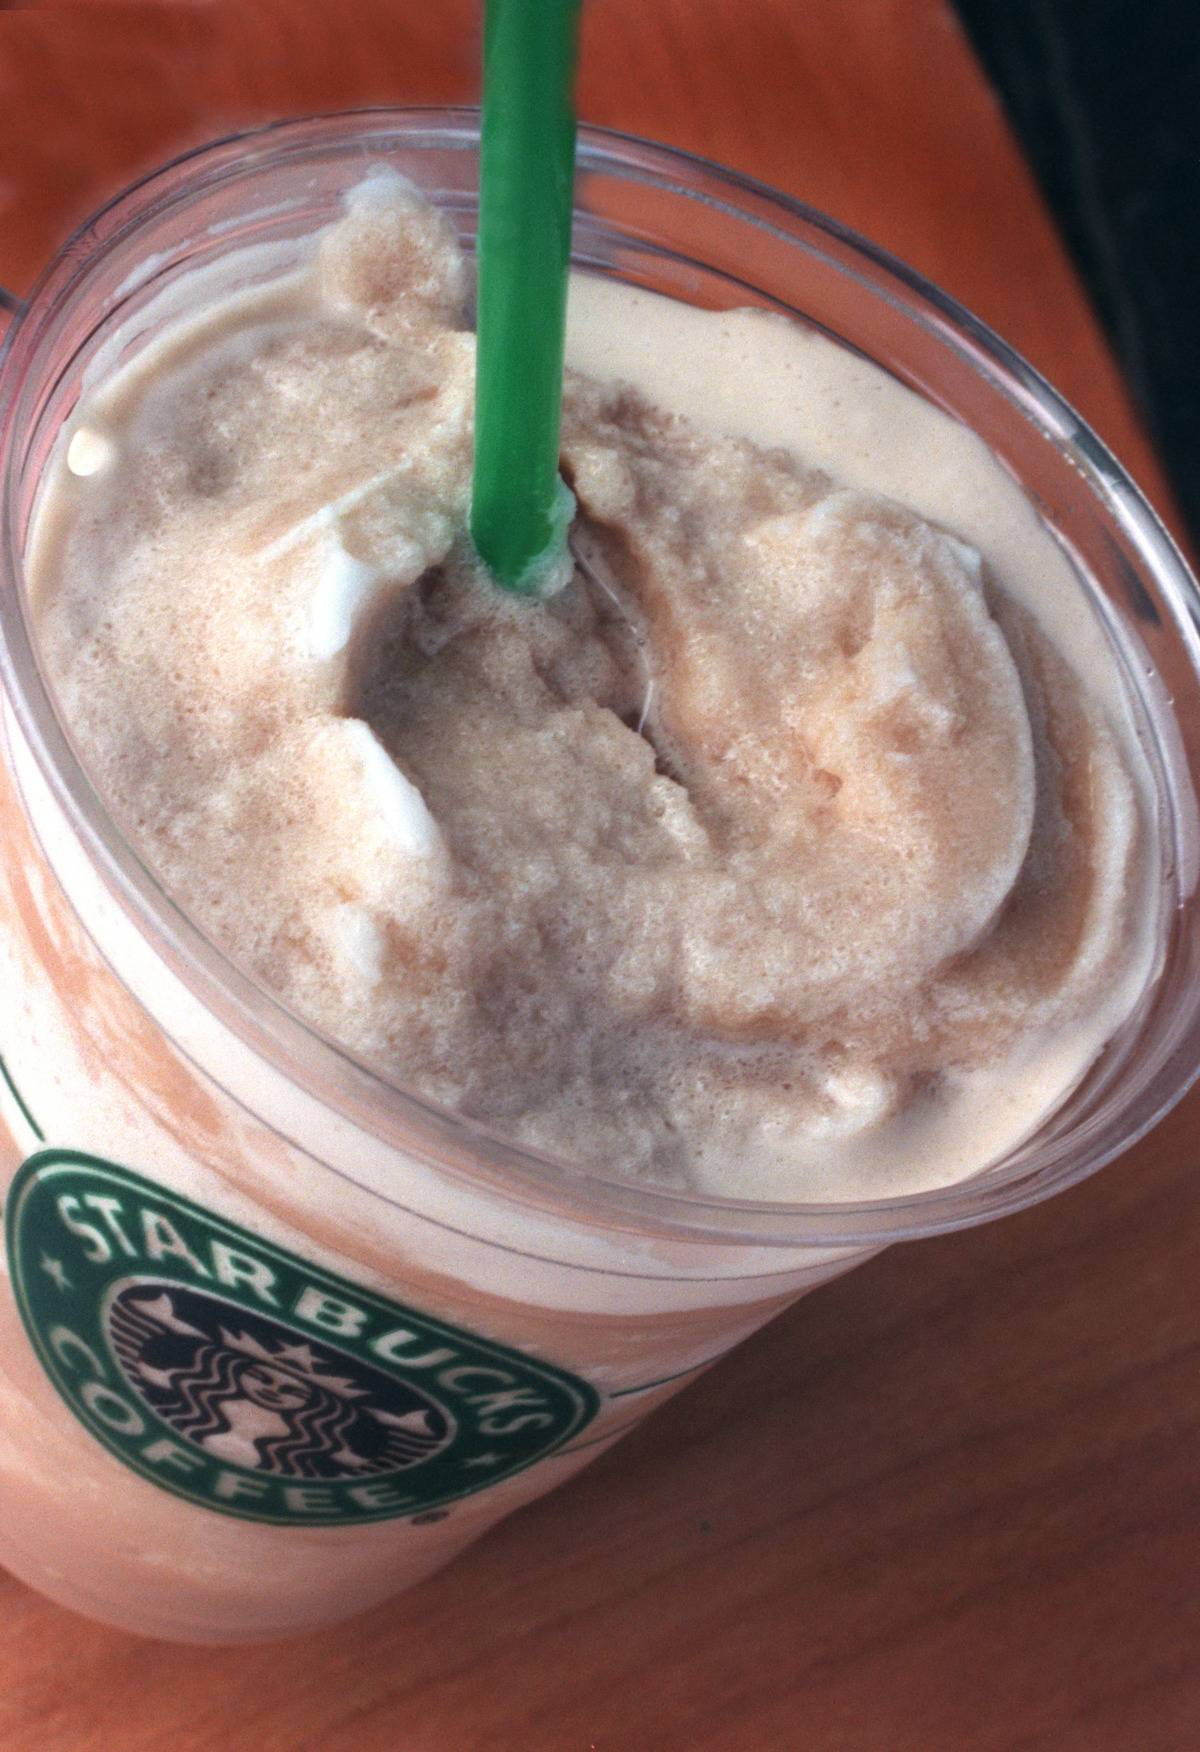 A regular Frappuccino (frothy and icey)